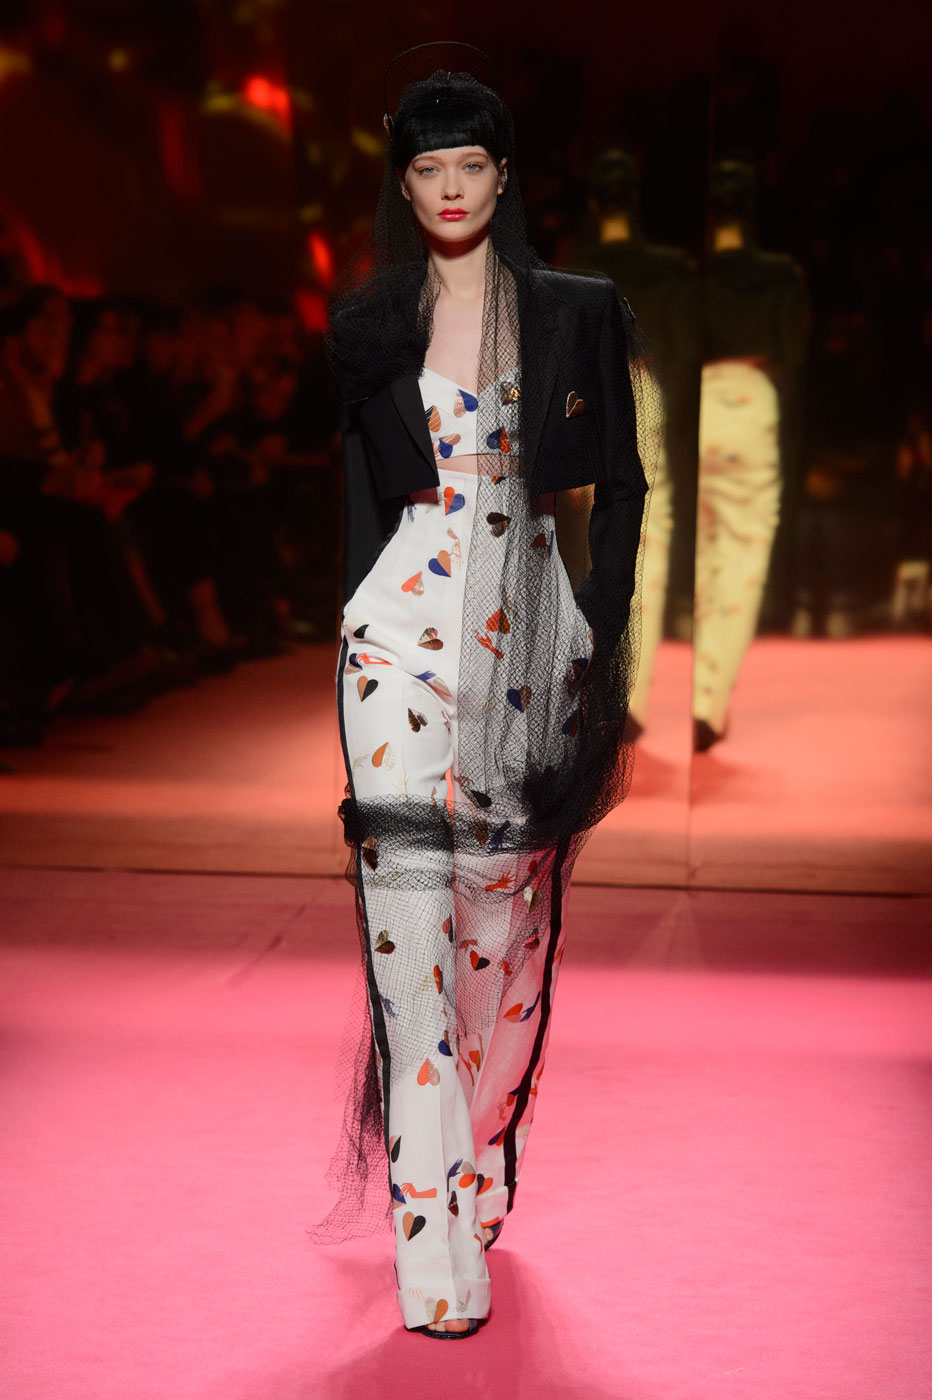 Schiaparelli-fashion-runway-show-haute-couture-paris-spring-summer-2015-the-impression-17